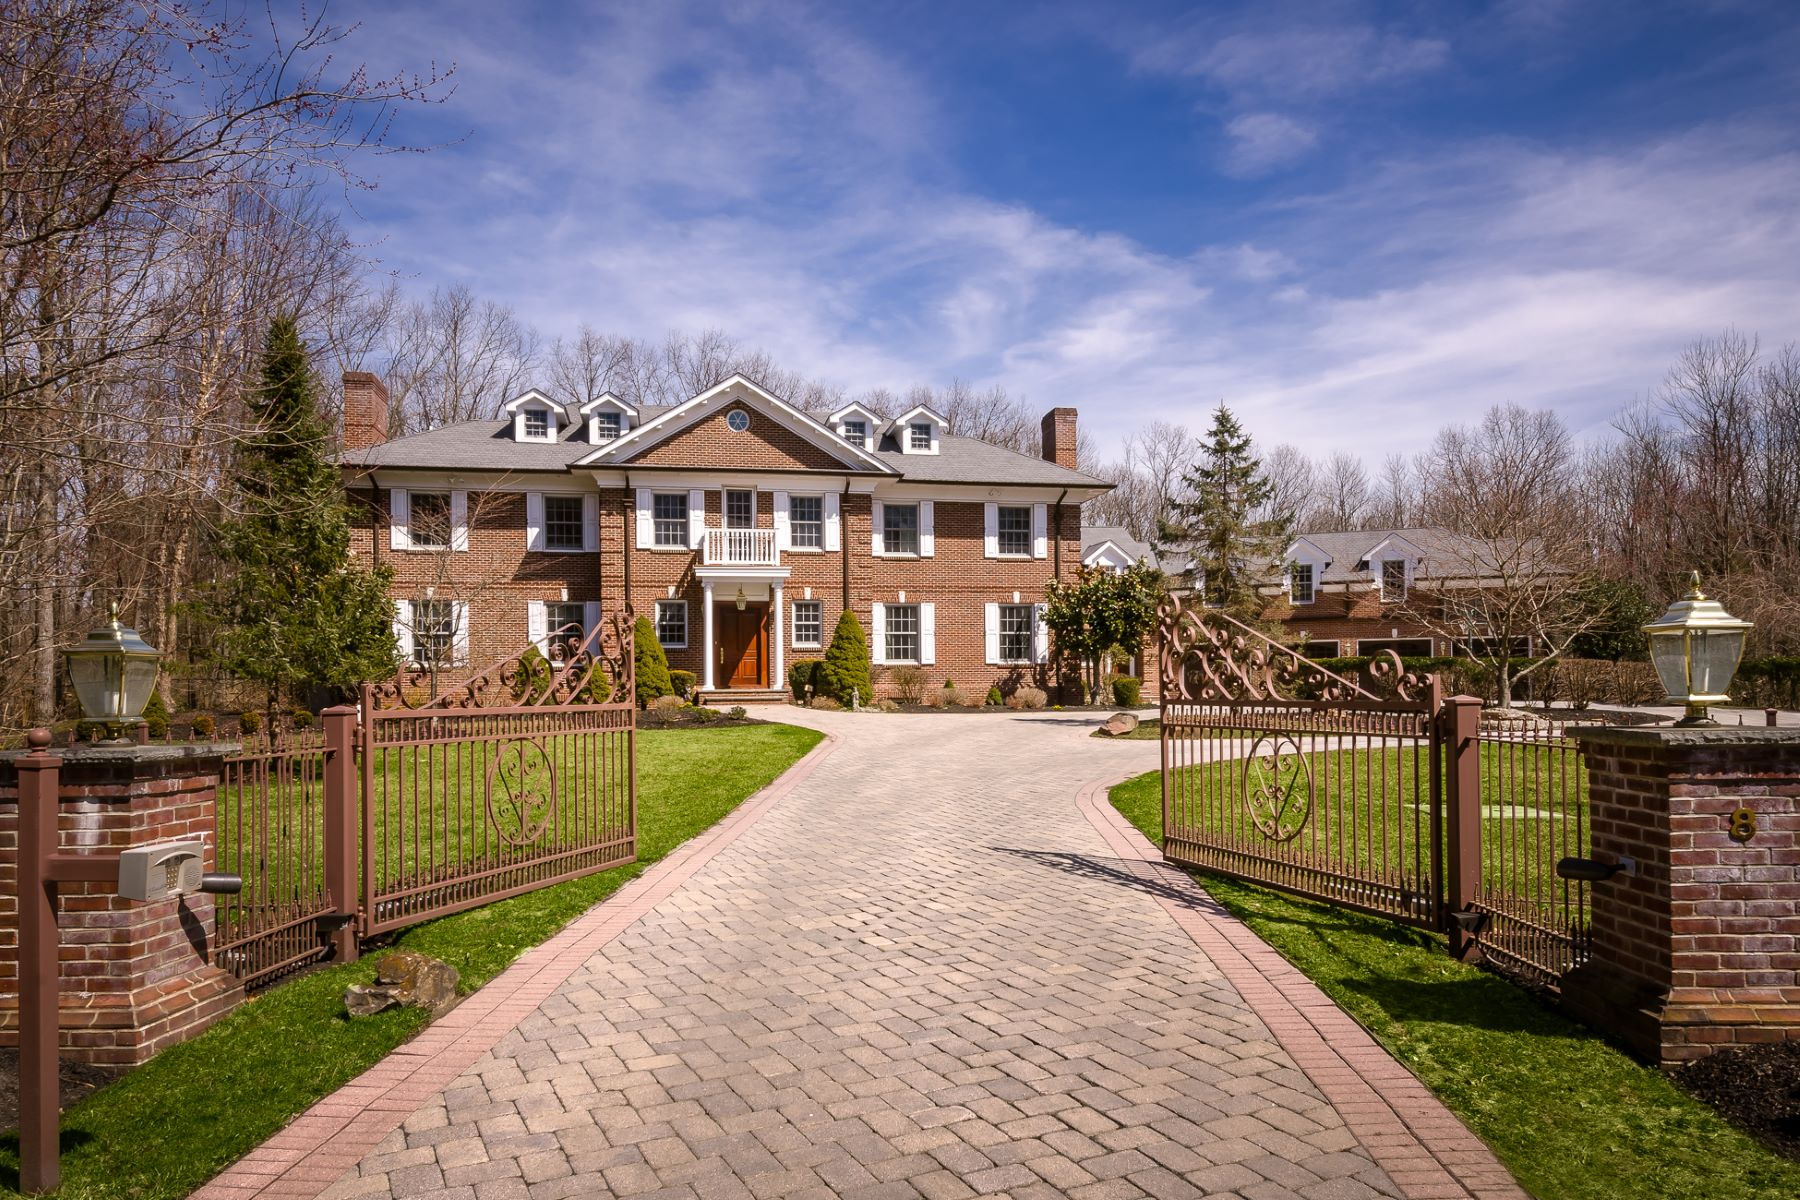 Single Family Homes için Satış at Stonybrook Manor: Once-in-a-Lifetime Magnificence 8 Players Lane, Princeton, New Jersey 08540 Amerika Birleşik Devletleri